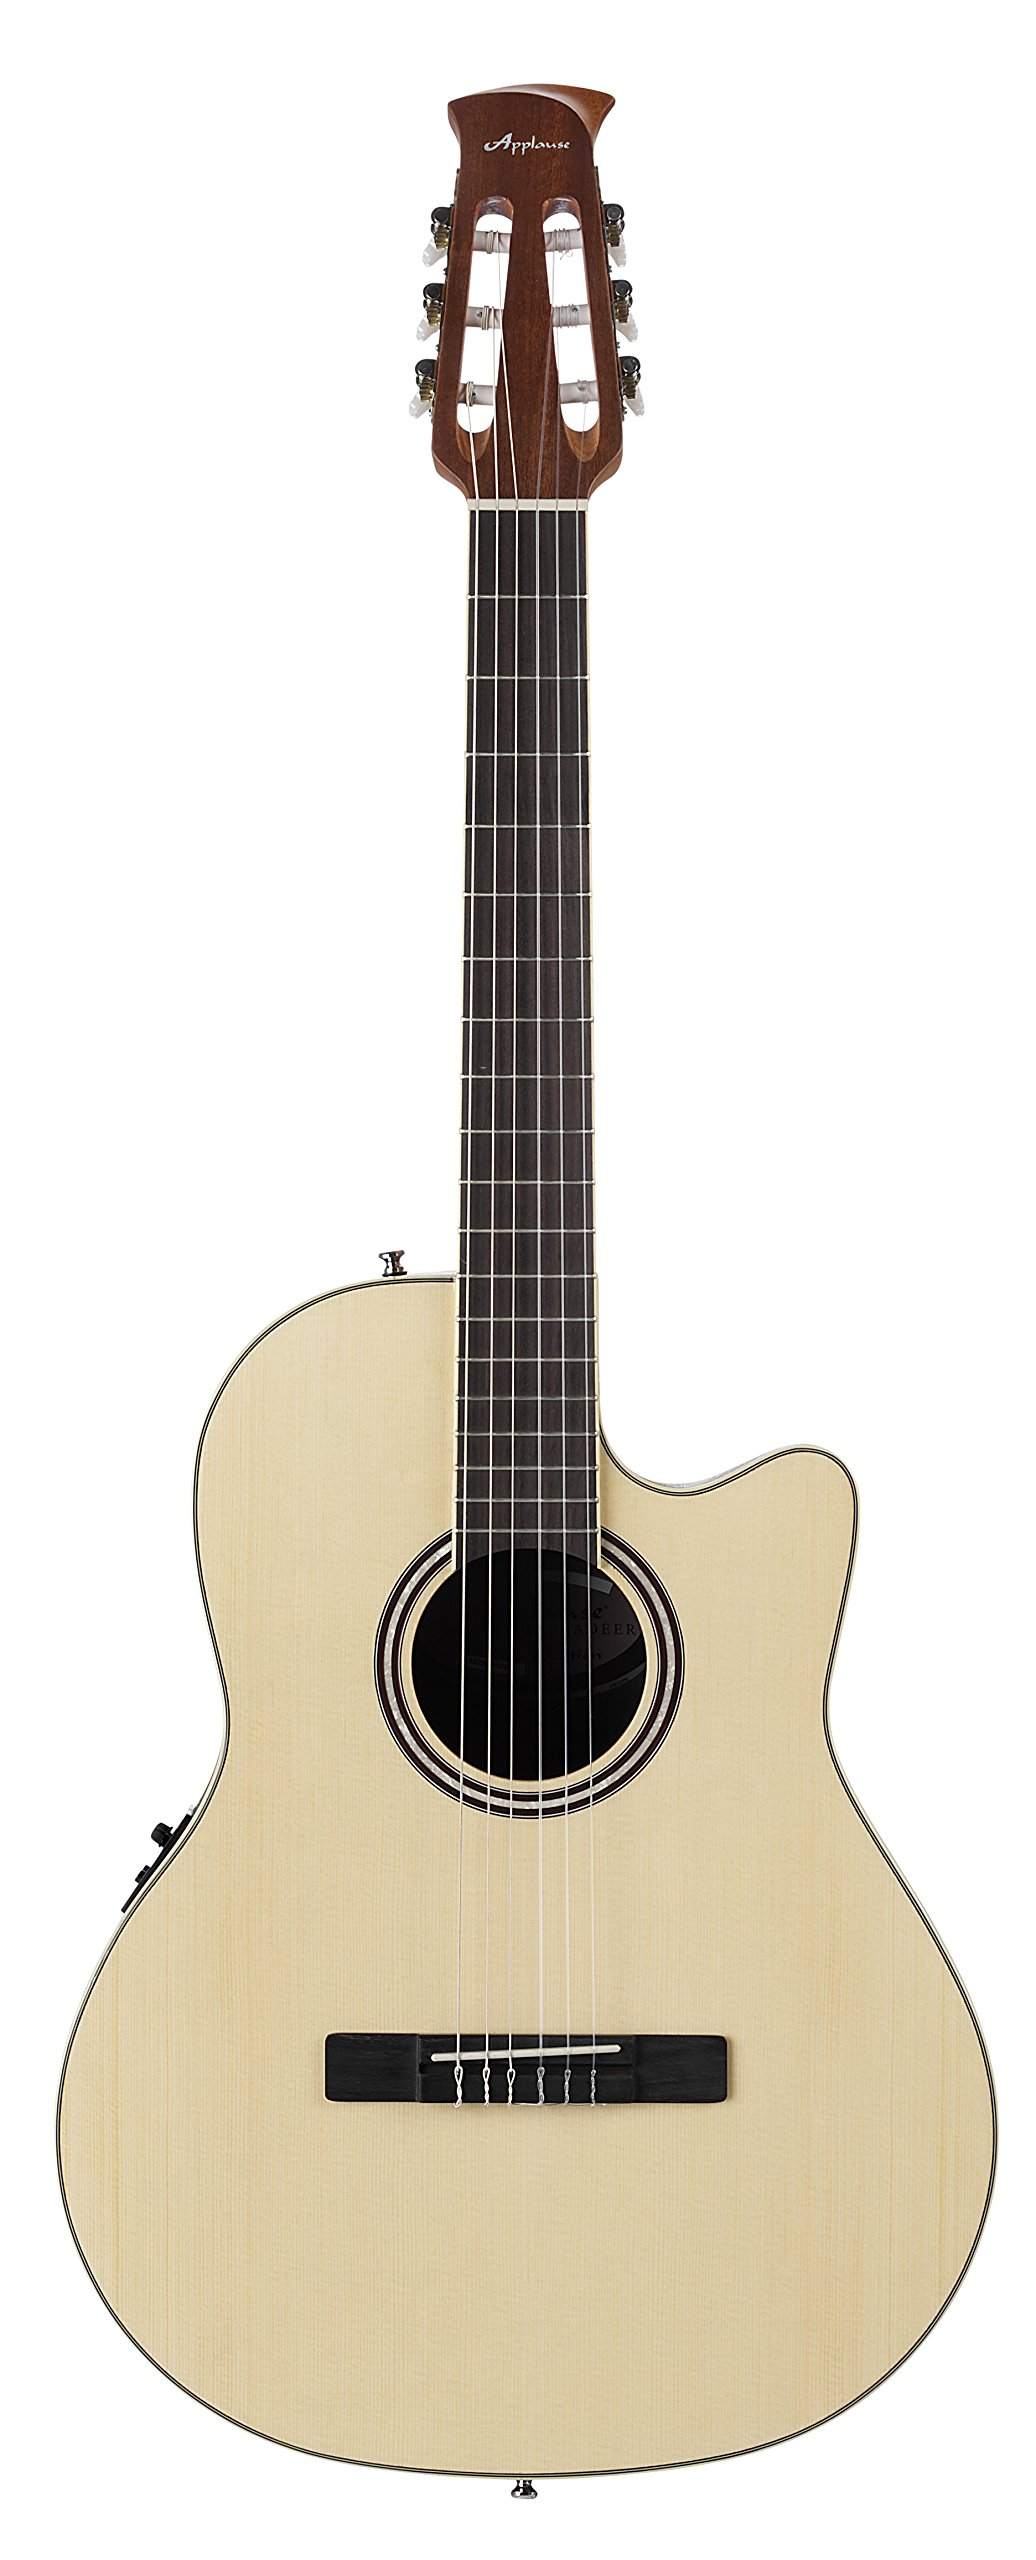 Ovation Applause Balladeer AB24CII-SPR Mid Depth Classical Guitar, Natural Spruce by Ovation